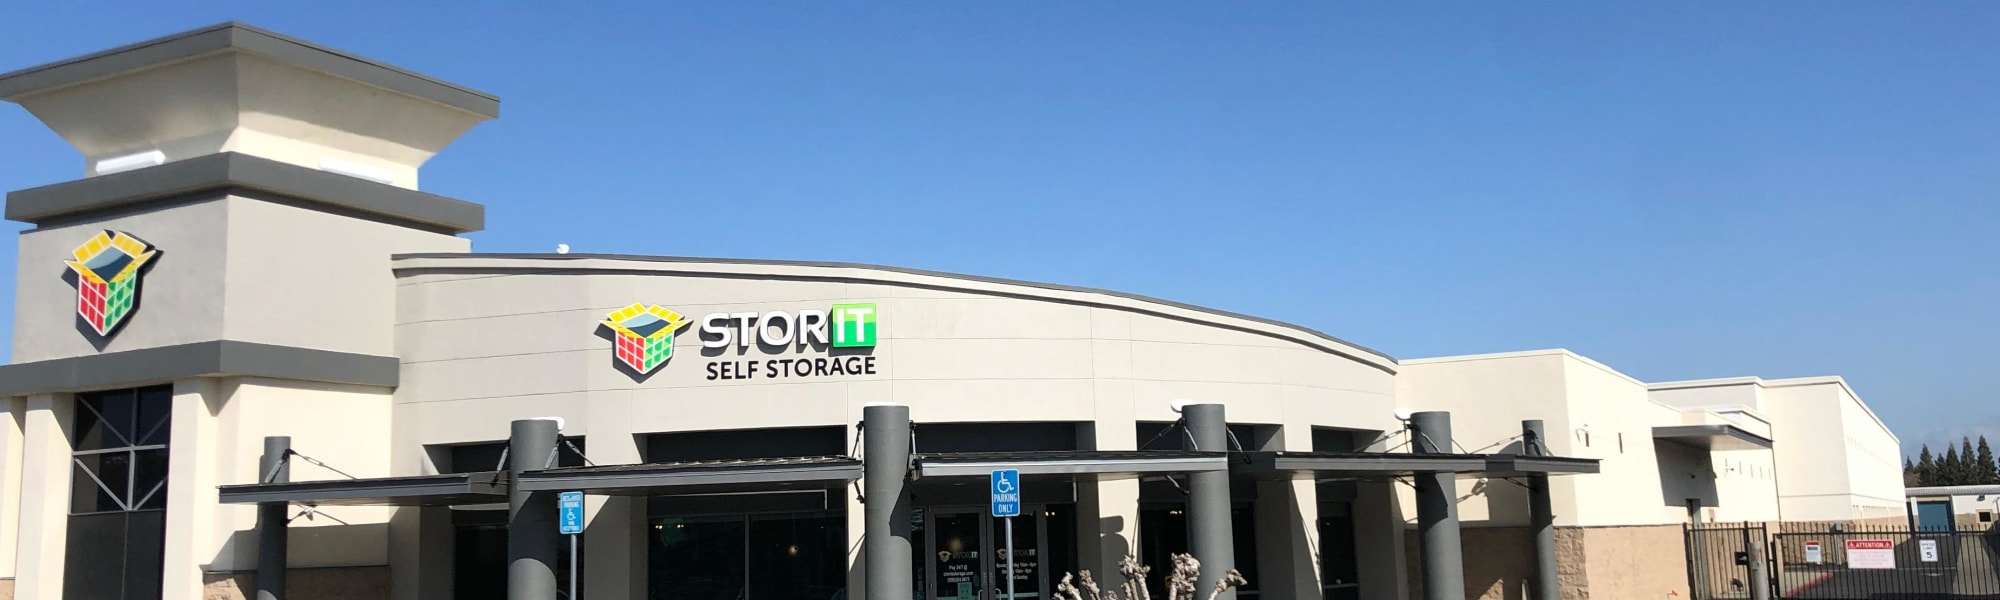 Office suites at Stor It Self Storage & Business Center in Clovis